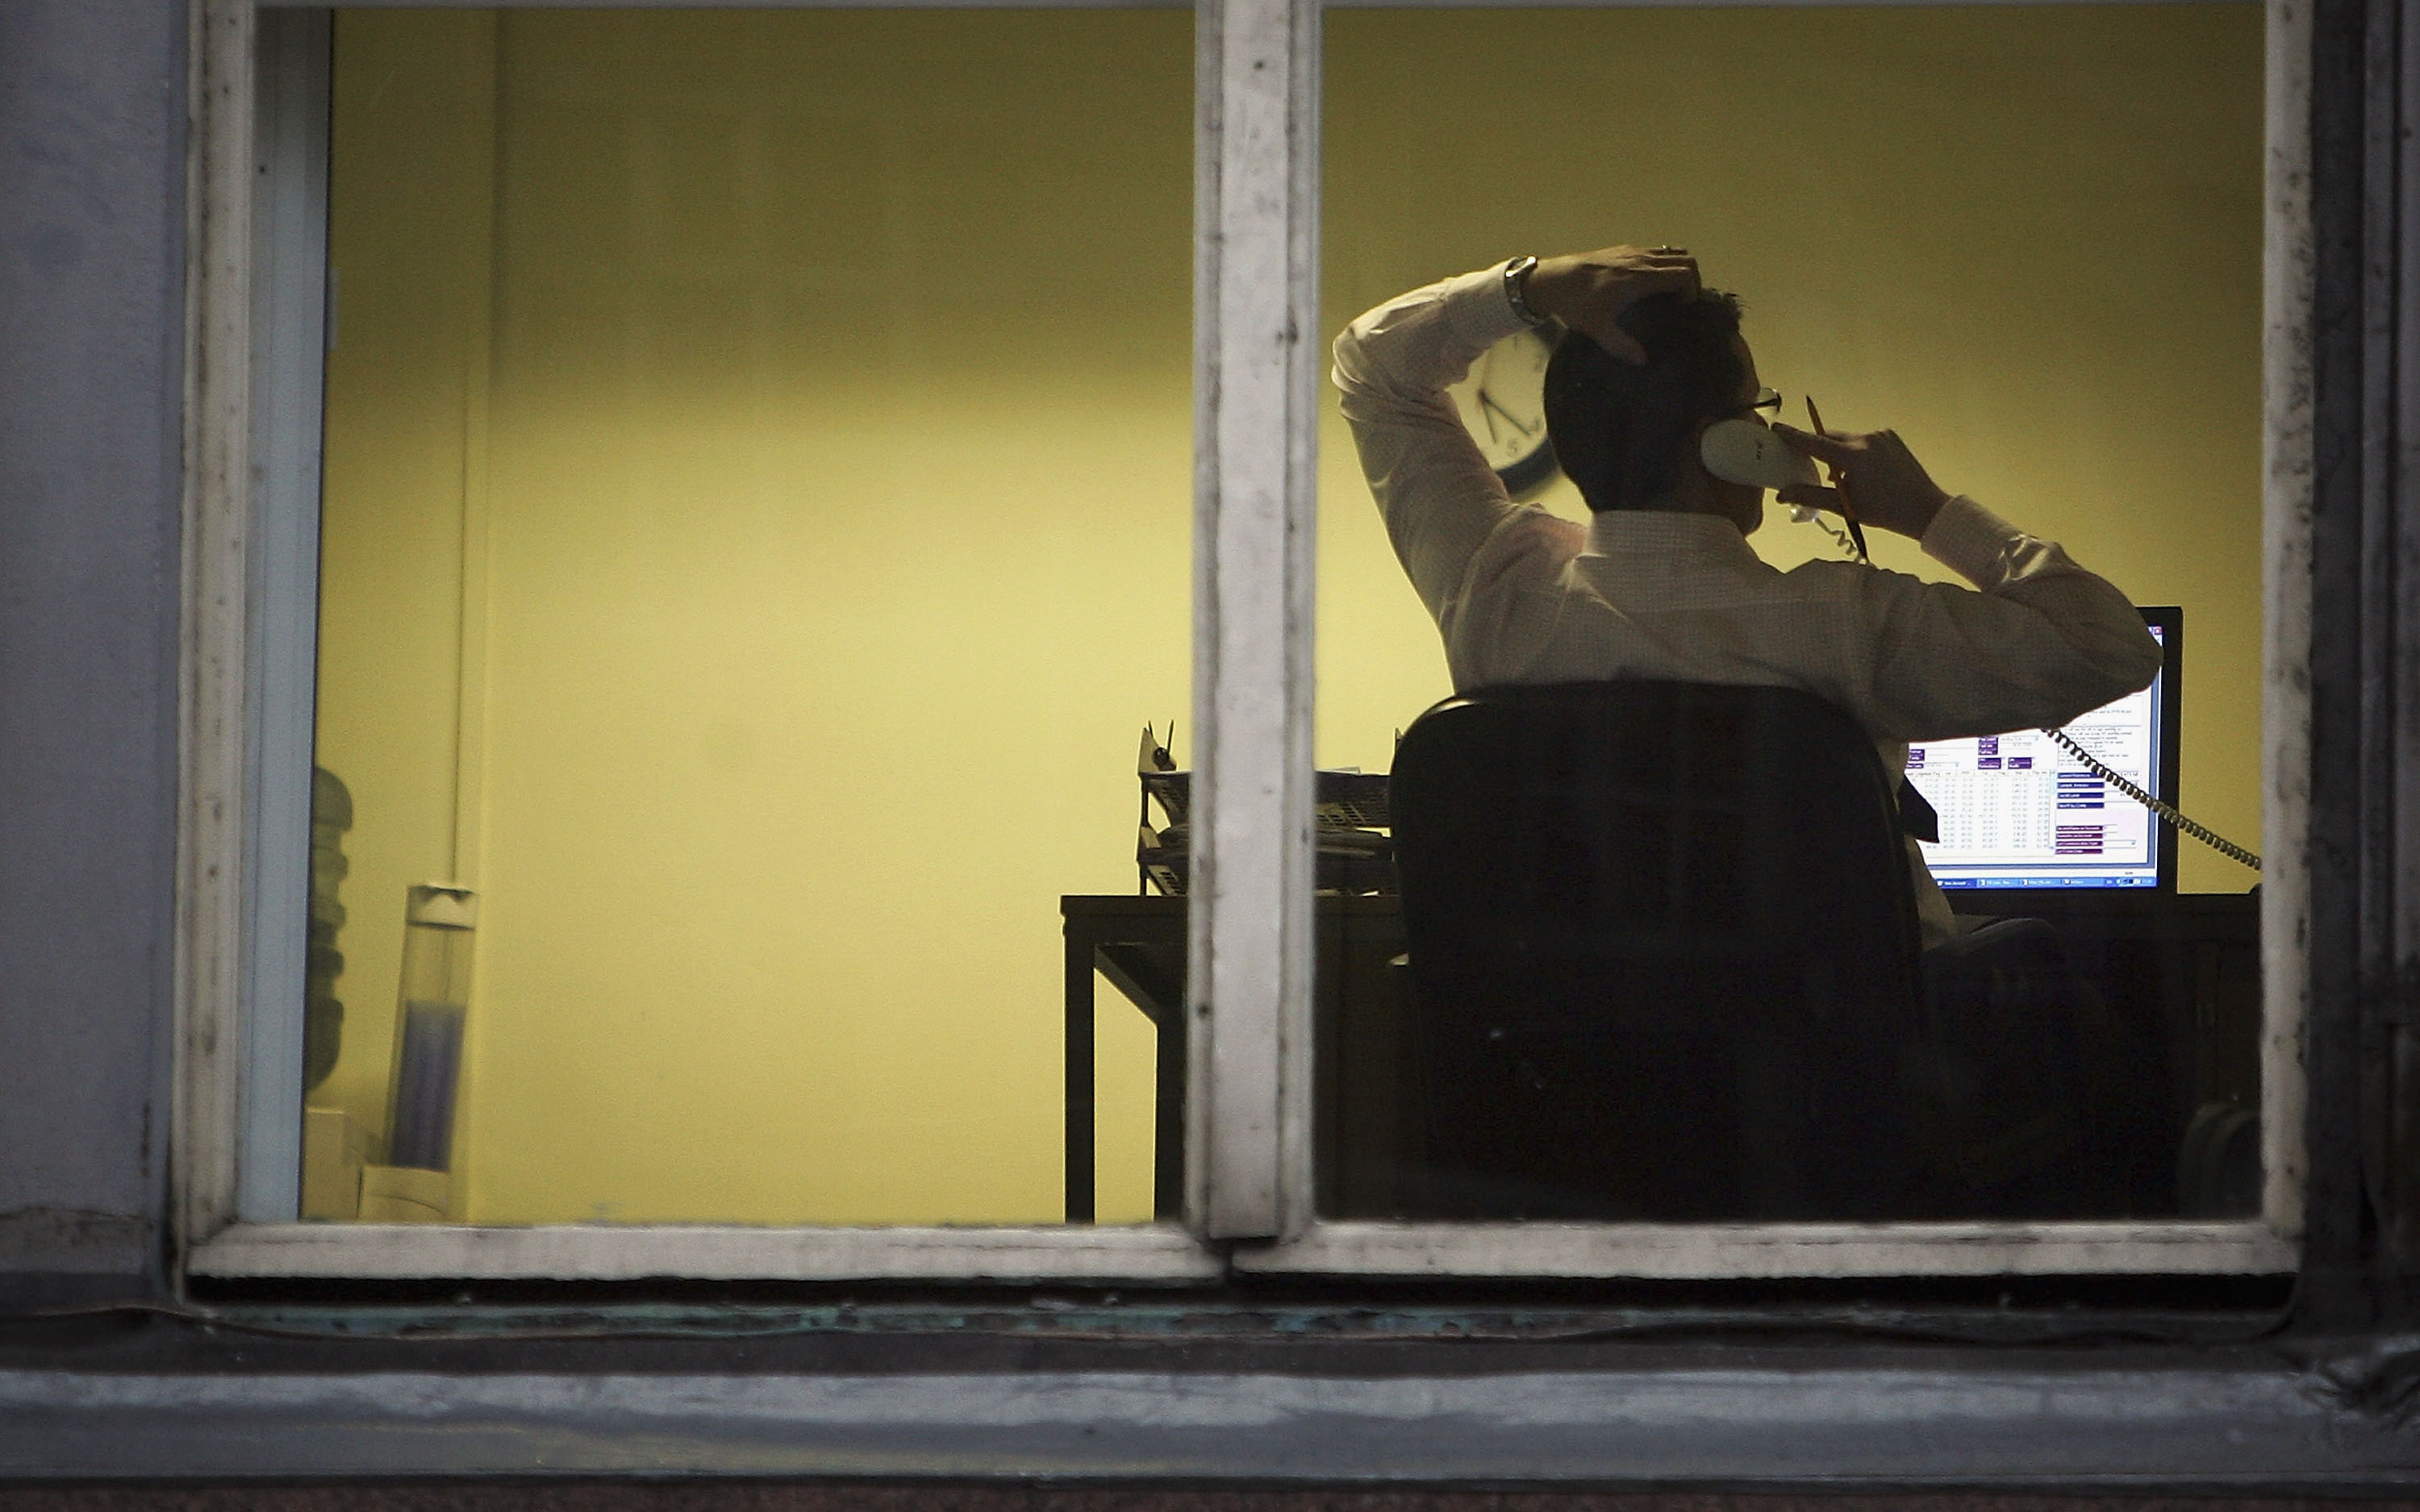 A city office employee works into the night as darkness closes in on October 10, 2005 in Glasgow, Scotland.